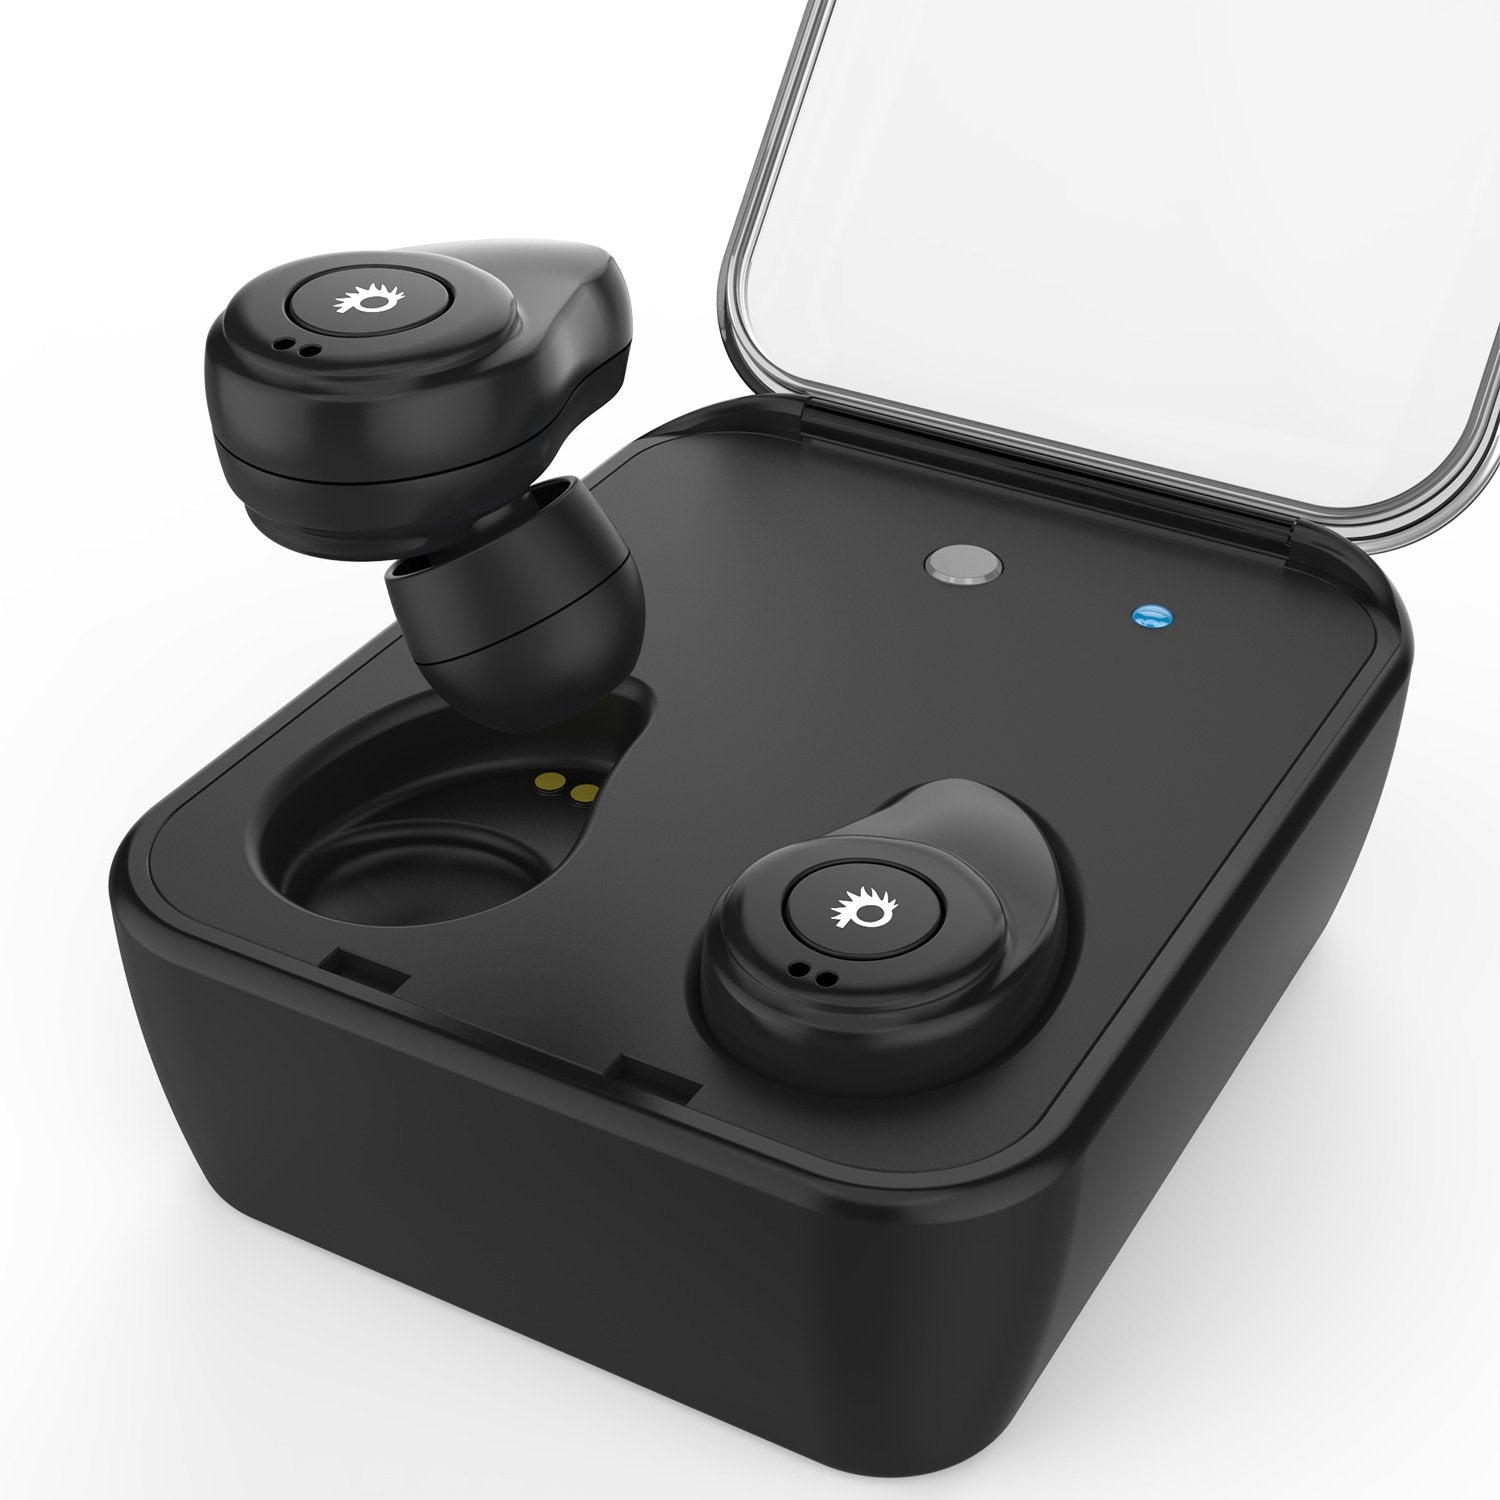 PunkBuds True Wireless Earbuds, Mini Bluetooth Headphones W/ Charging Case & Built-In Noise Cancelling Mic. [Black]